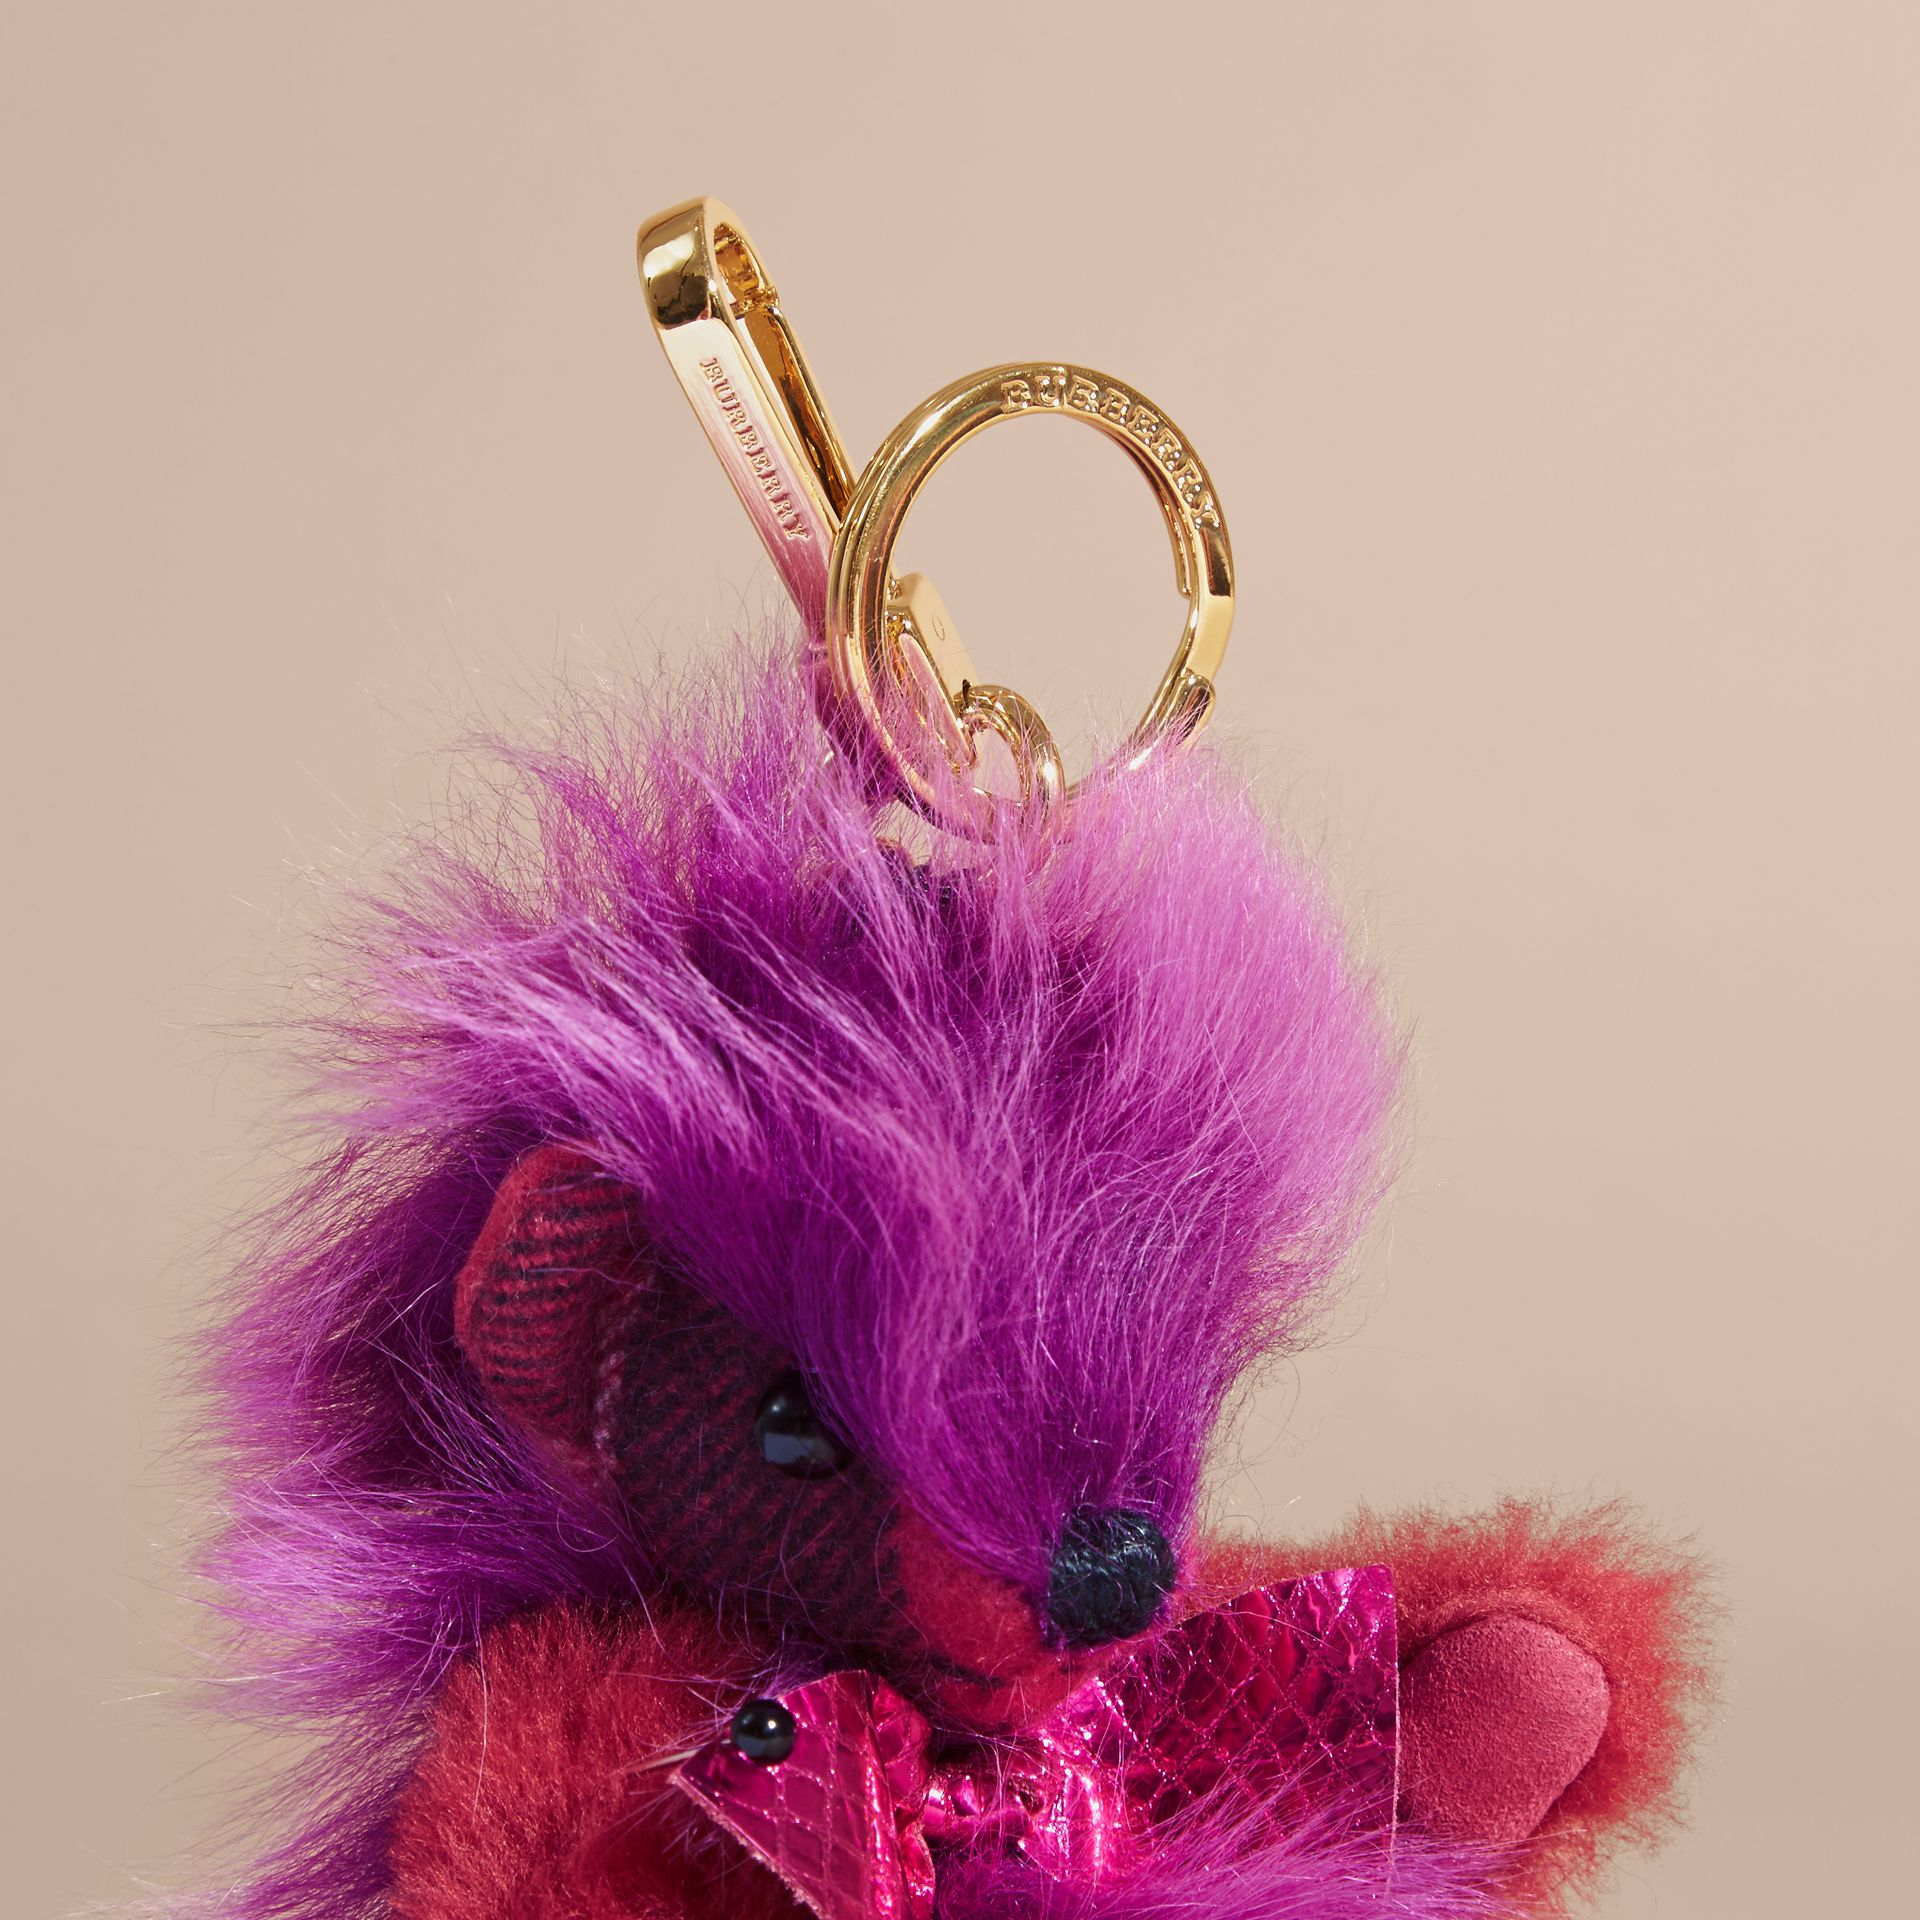 Thomas Bear Pom-Pom Charm in Check Cashmere in Fuchsia Pink - Women | Burberry - gallery image 2